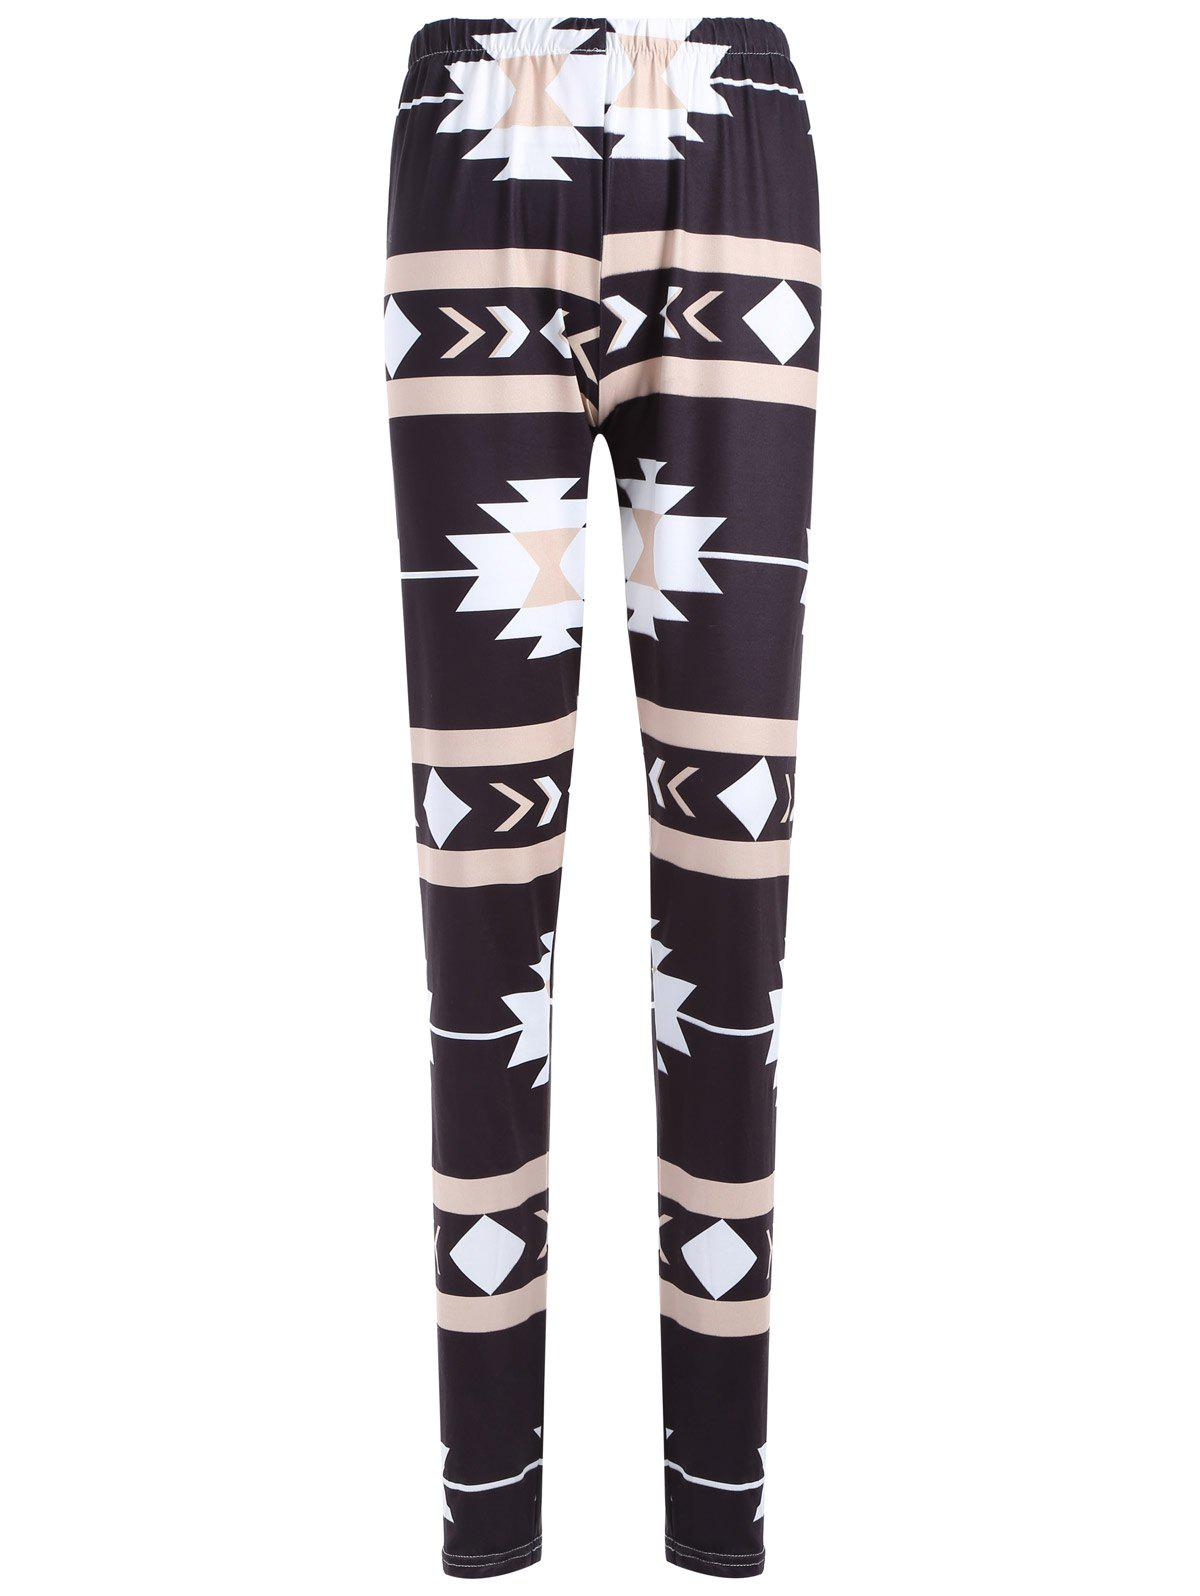 Geometric Print Skinny Christmas Leggings - BLACK S